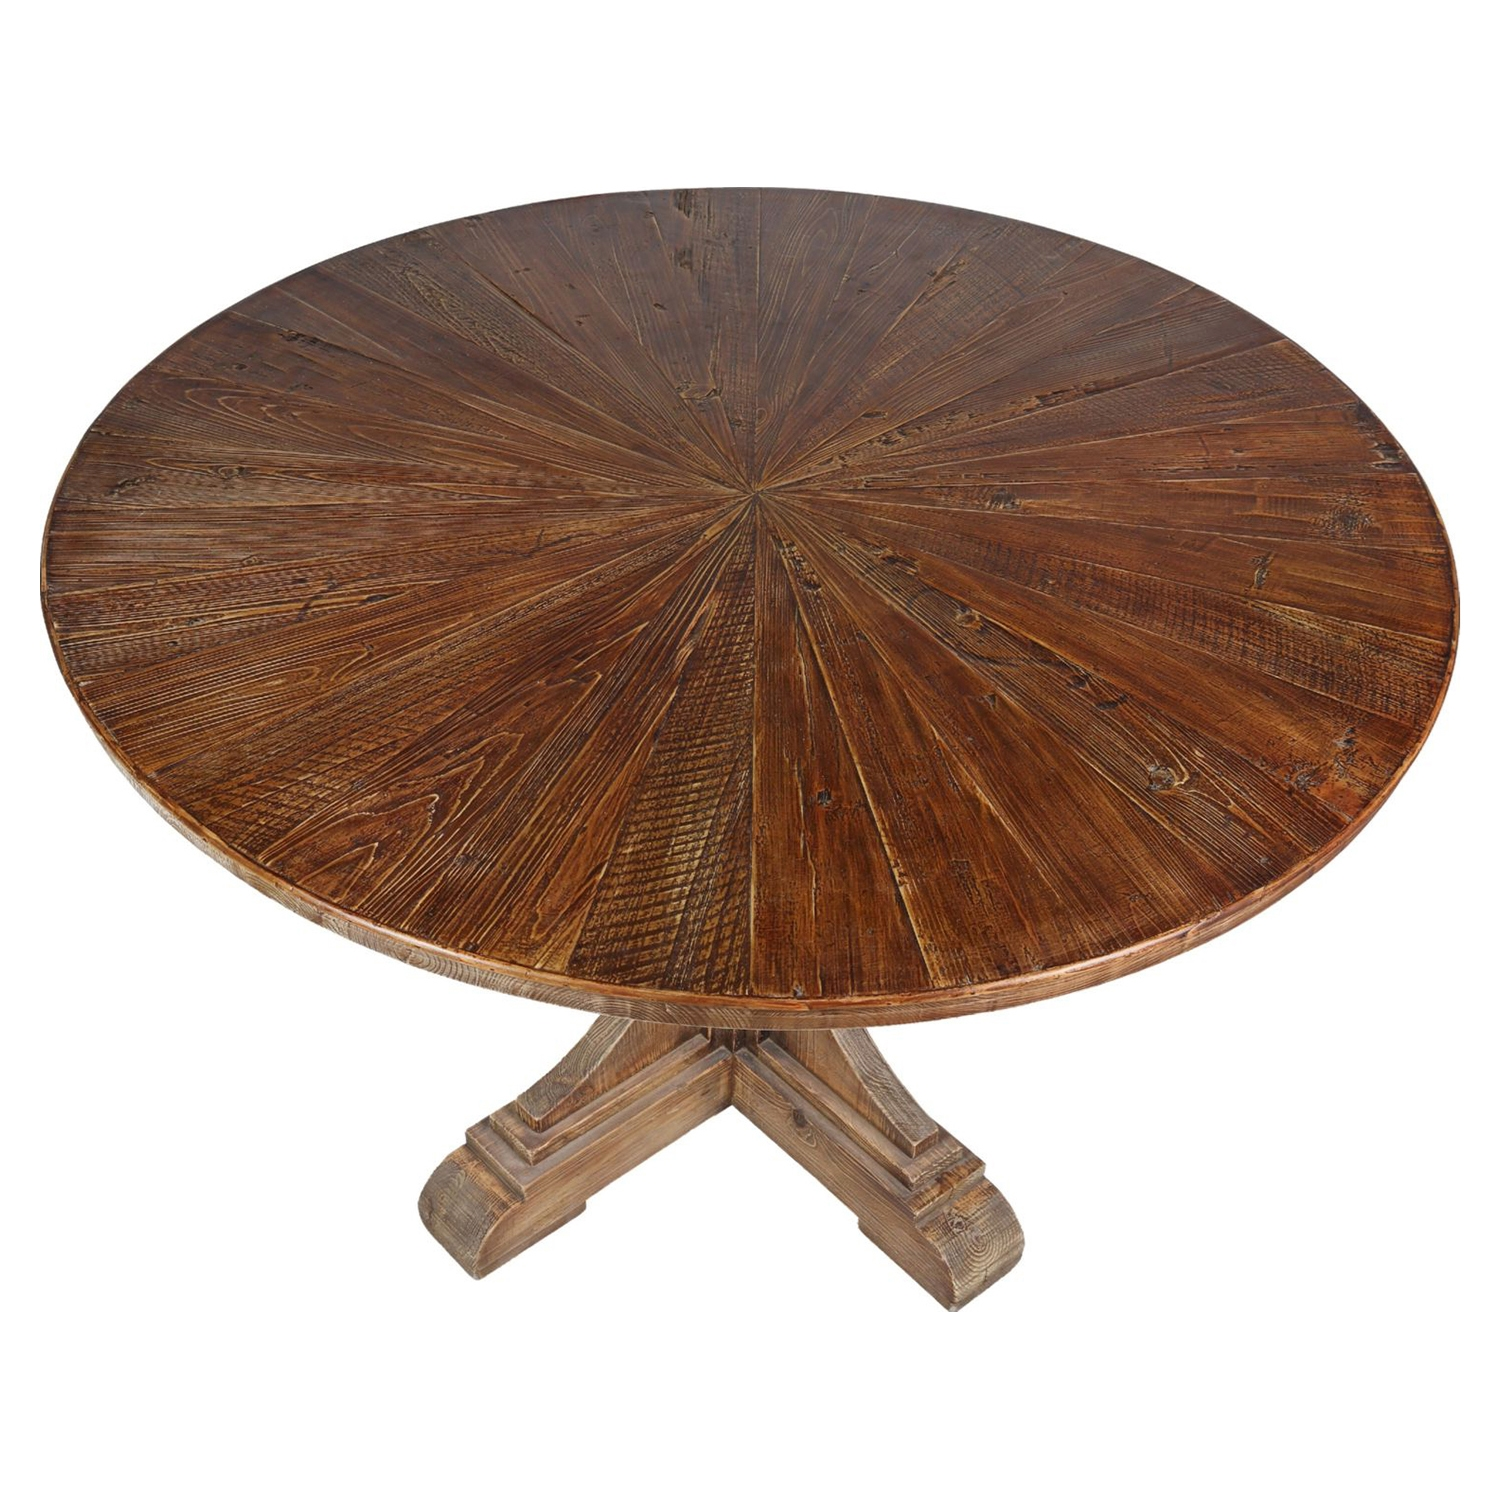 Calistoga Dining Table - Brown, Pedestal Base - MOES-KJ-1008-03